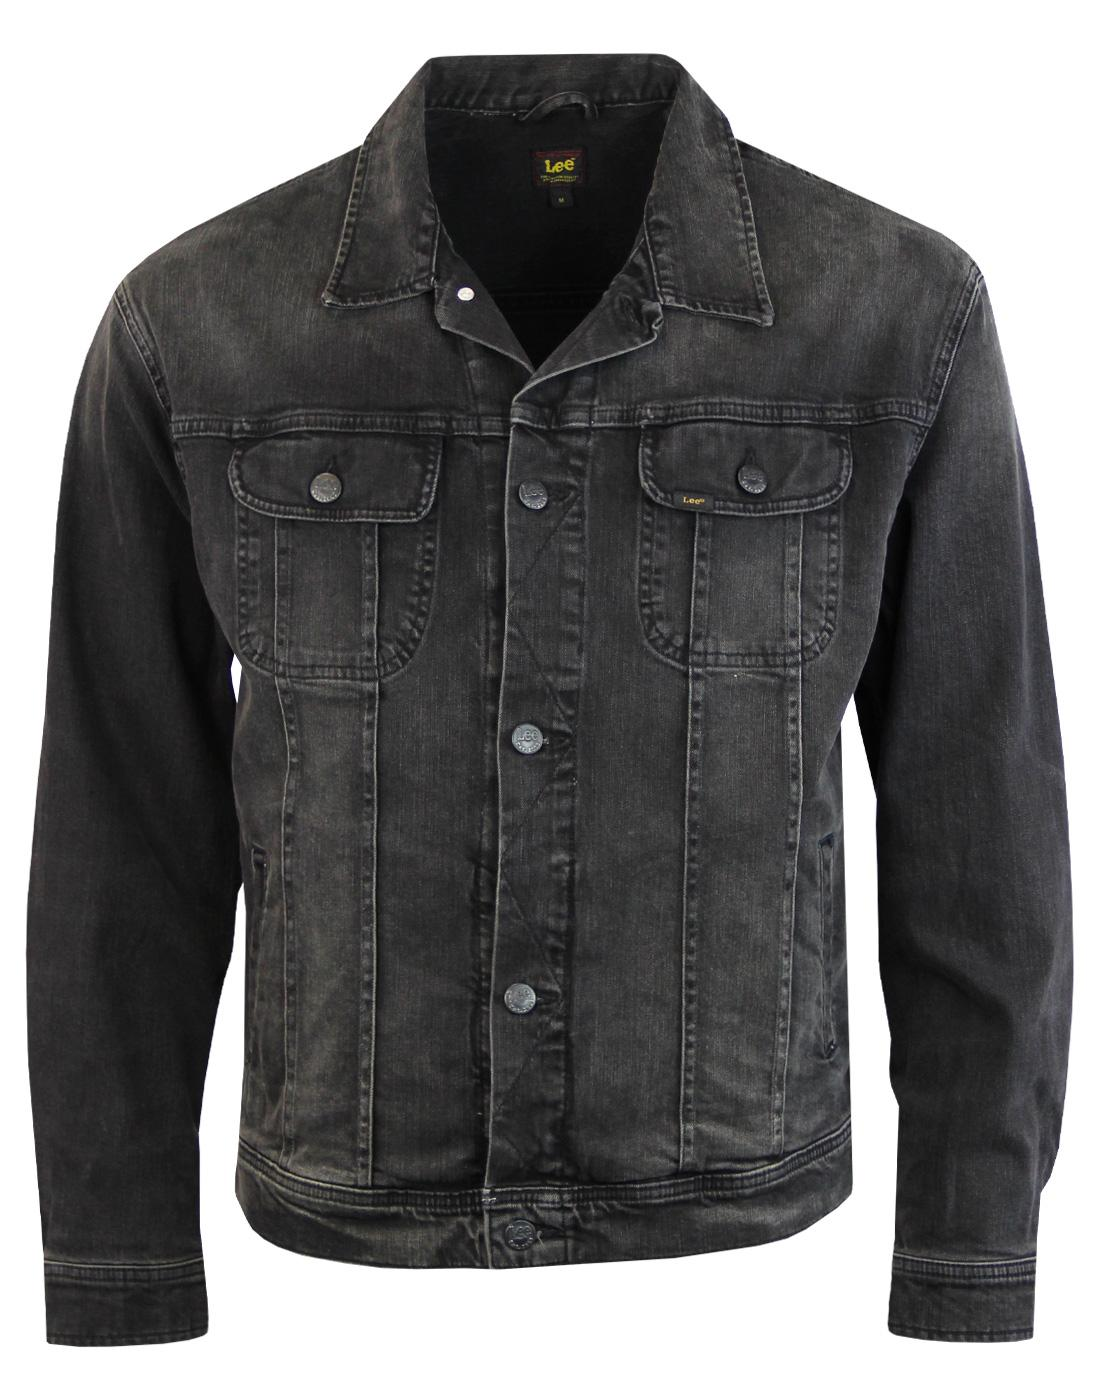 LEE Oversized Rider Retro Punk Deluxe Denim Jacket